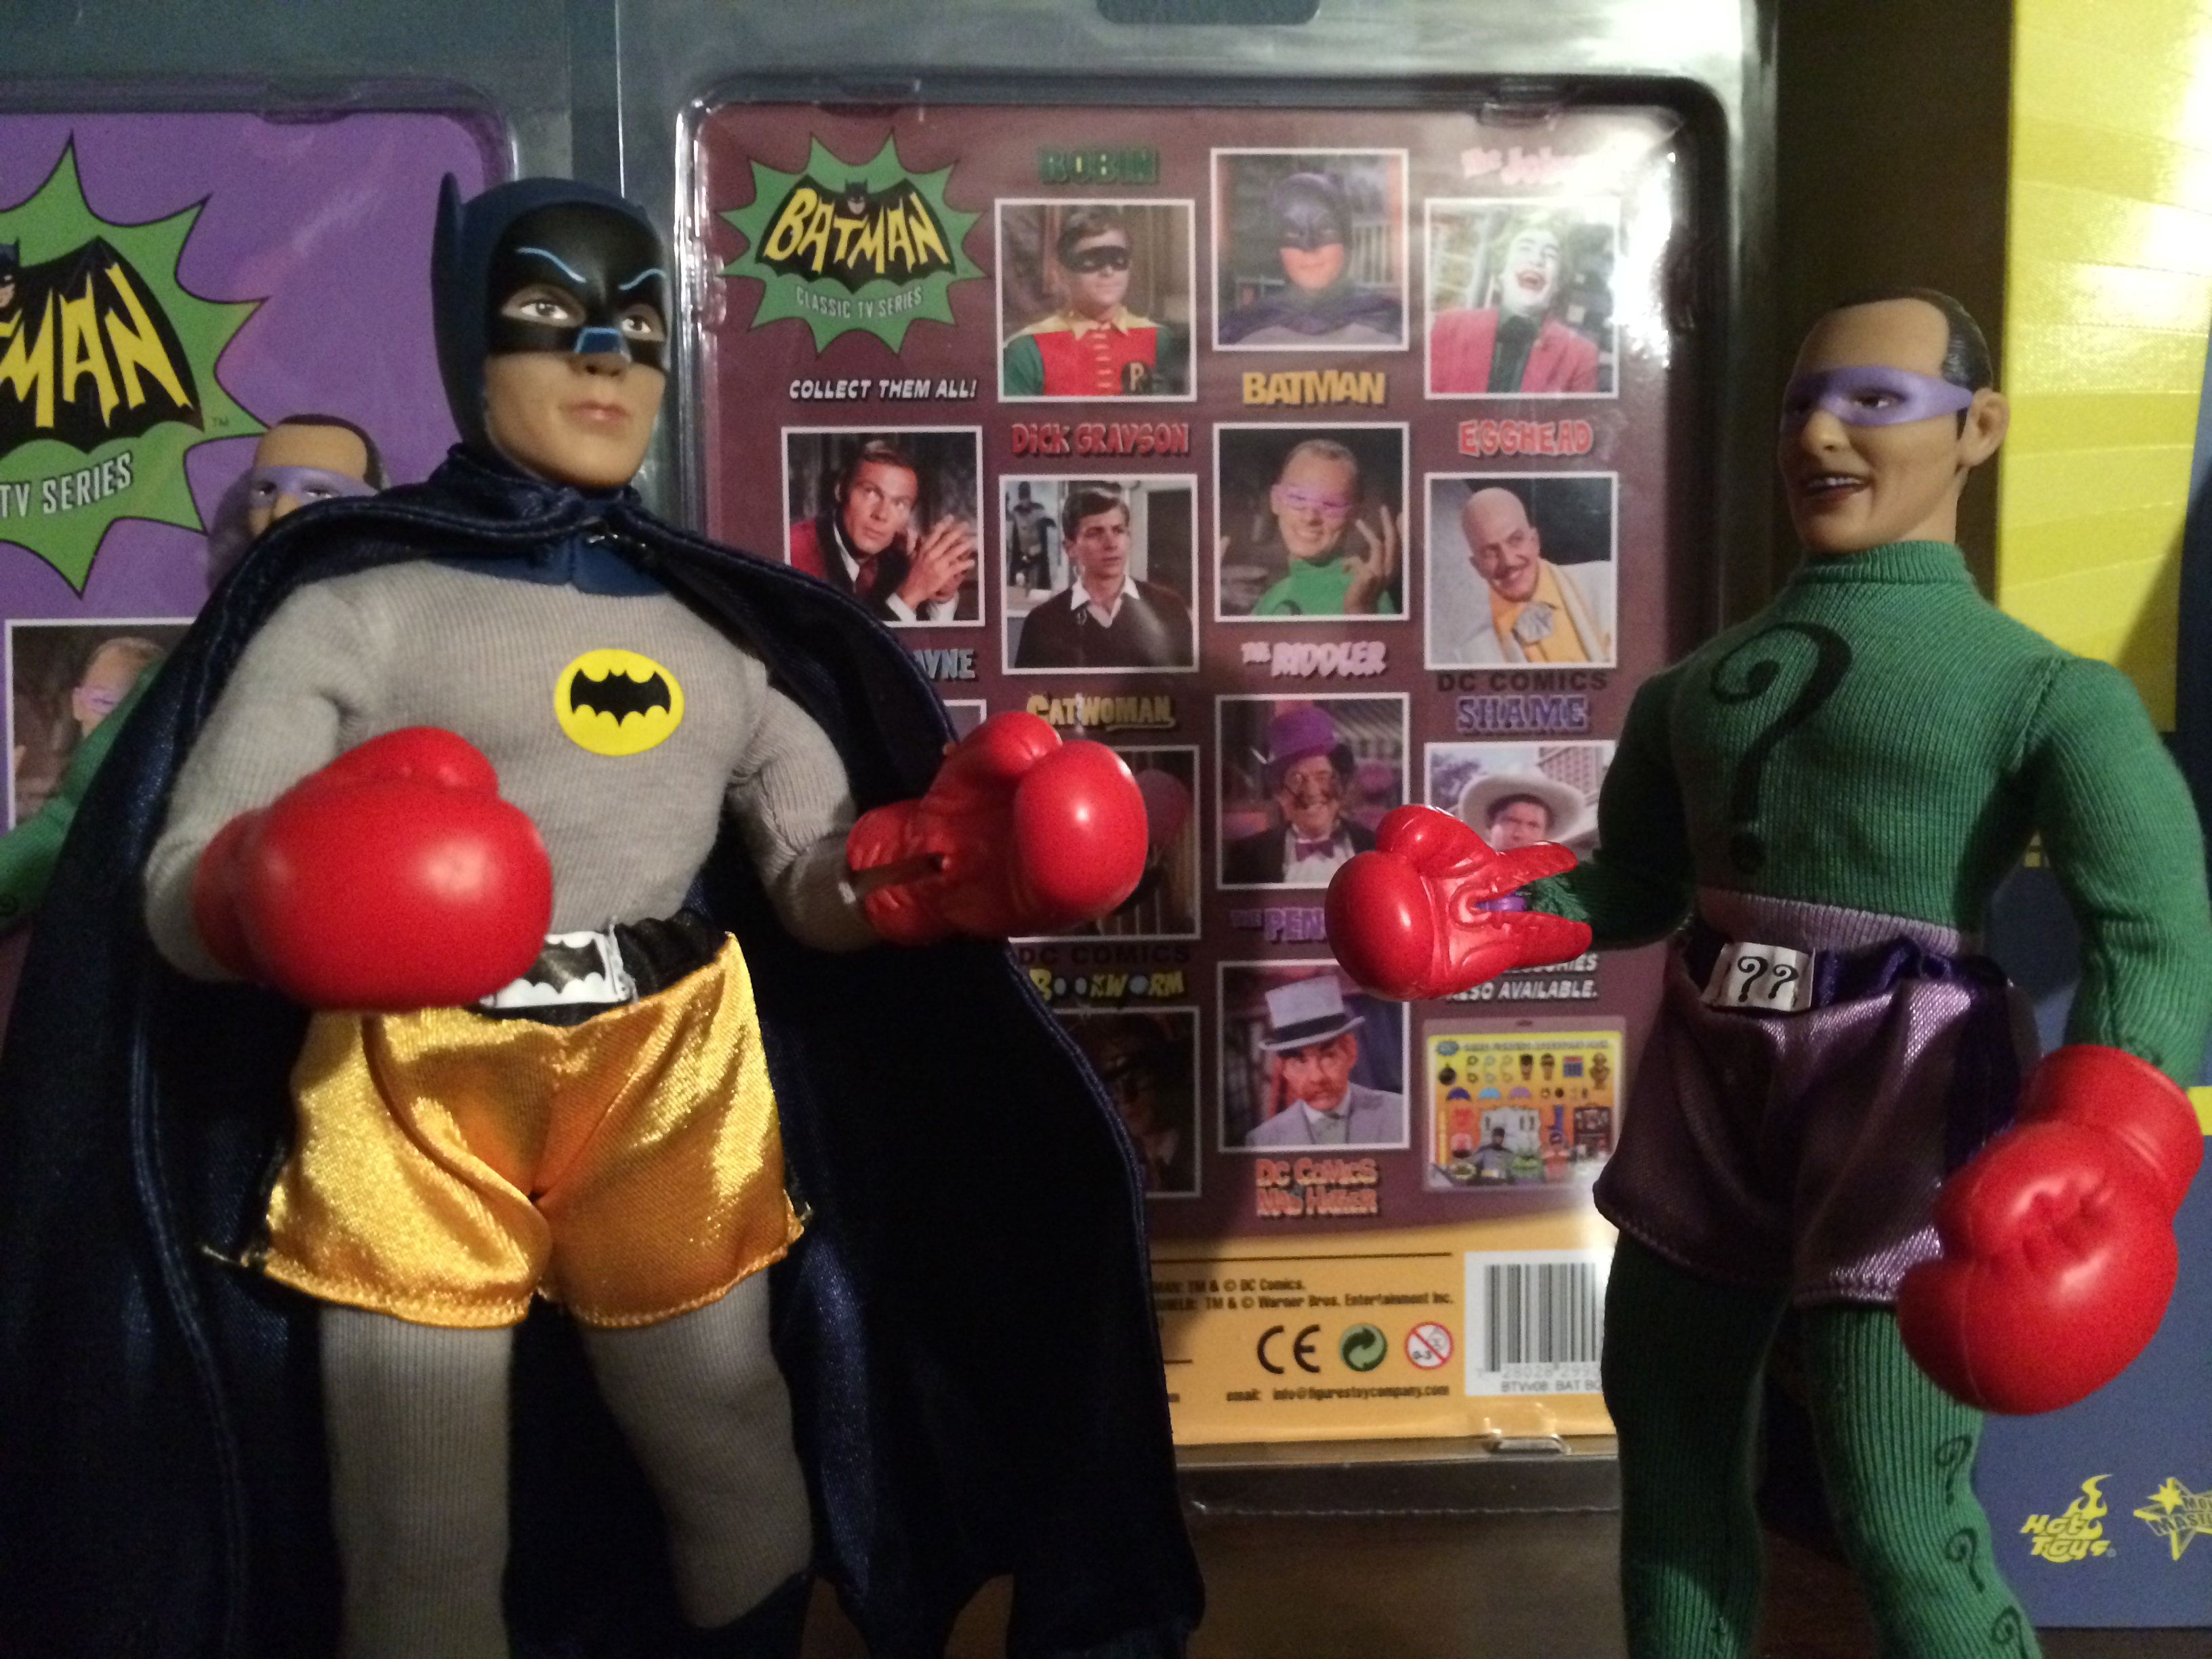 Batman boxing the Riddler dolls